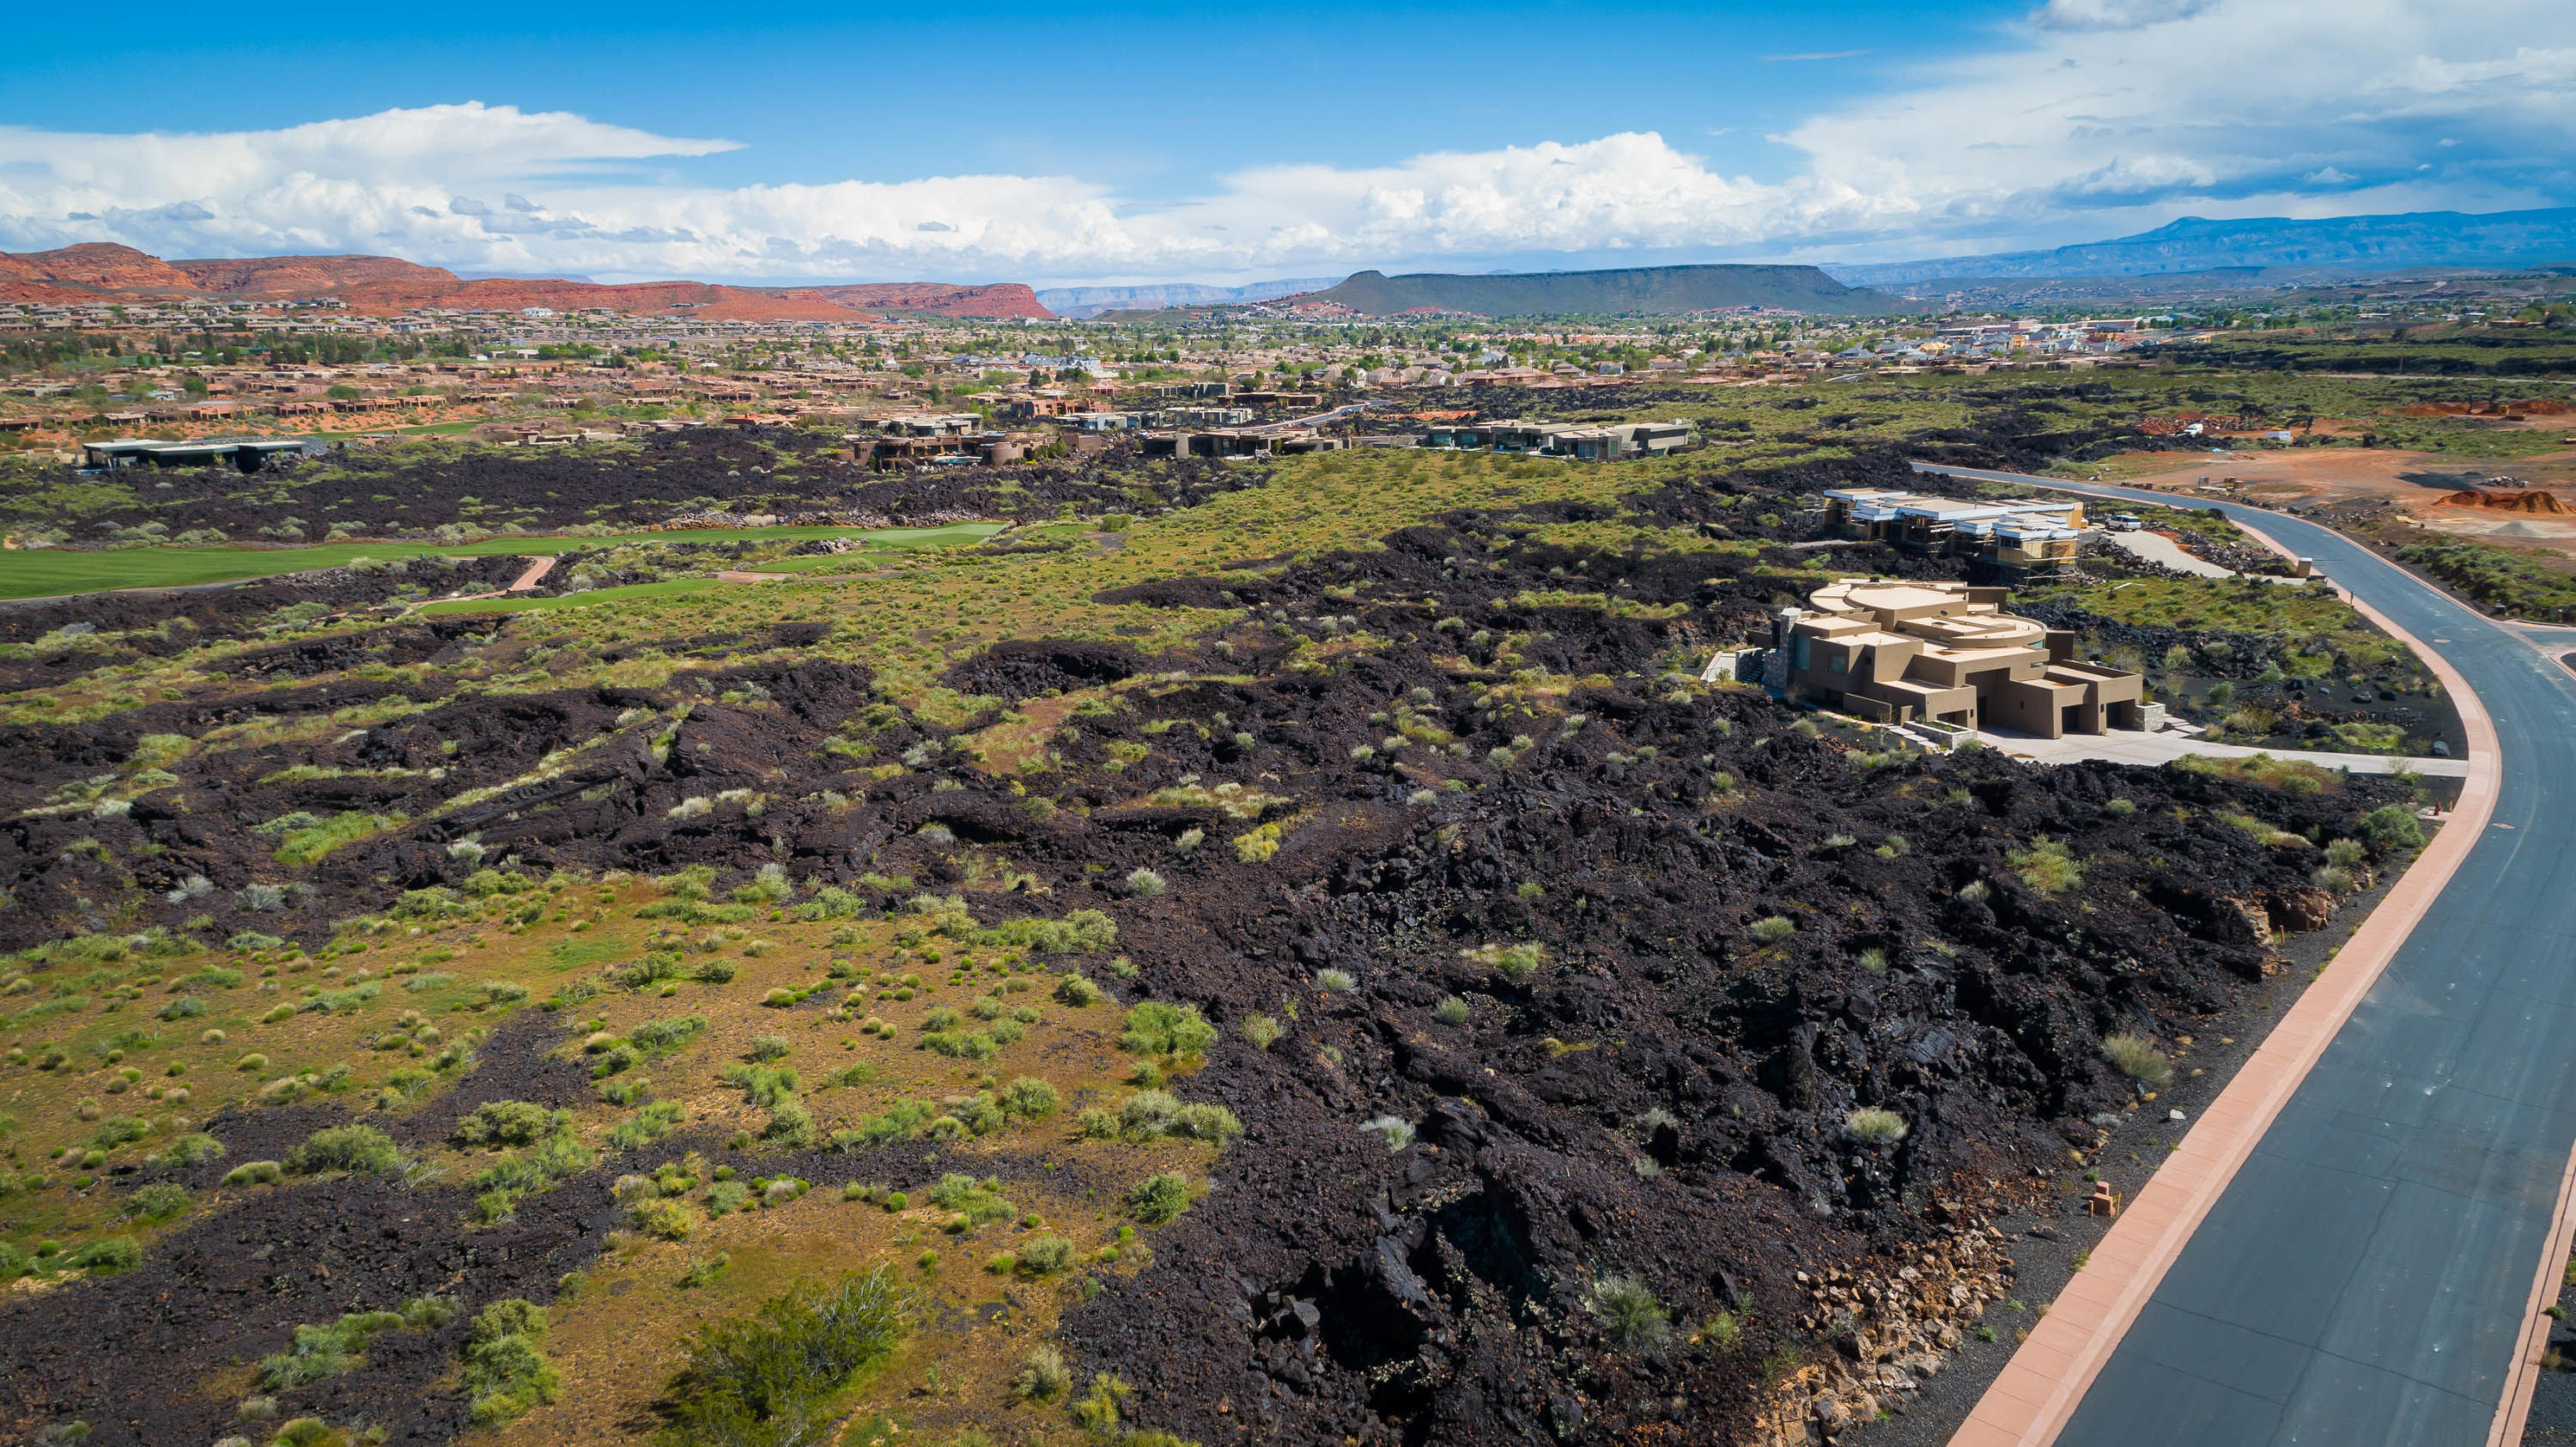 This magnificent lot will not disappoint! Sitting center stage your future home awaits the breathtaking views of Snow Canyon mountains & the spectacular Entrada golf coarse! Building your new dream home in the famous Entrada community is now an opportunity of a lifetime. Don\